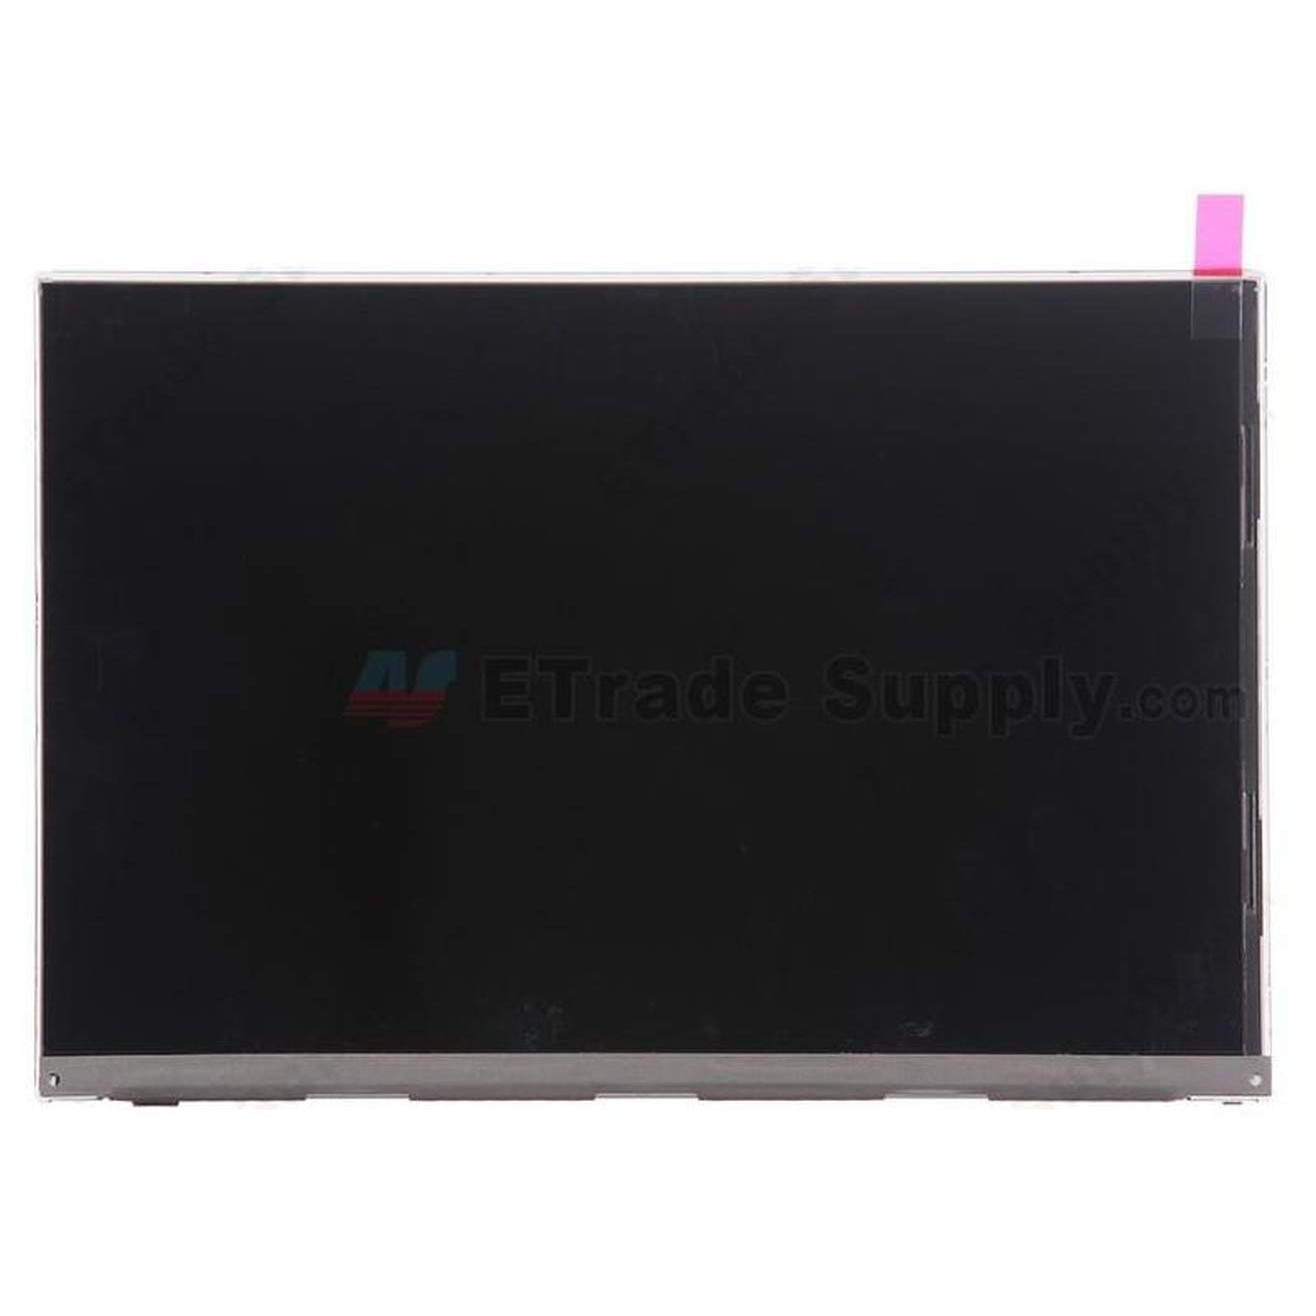 LCD Screen for Amazon Kindle Fire HDX 8 9 Wi-Fi Only (replacement display  without touch)